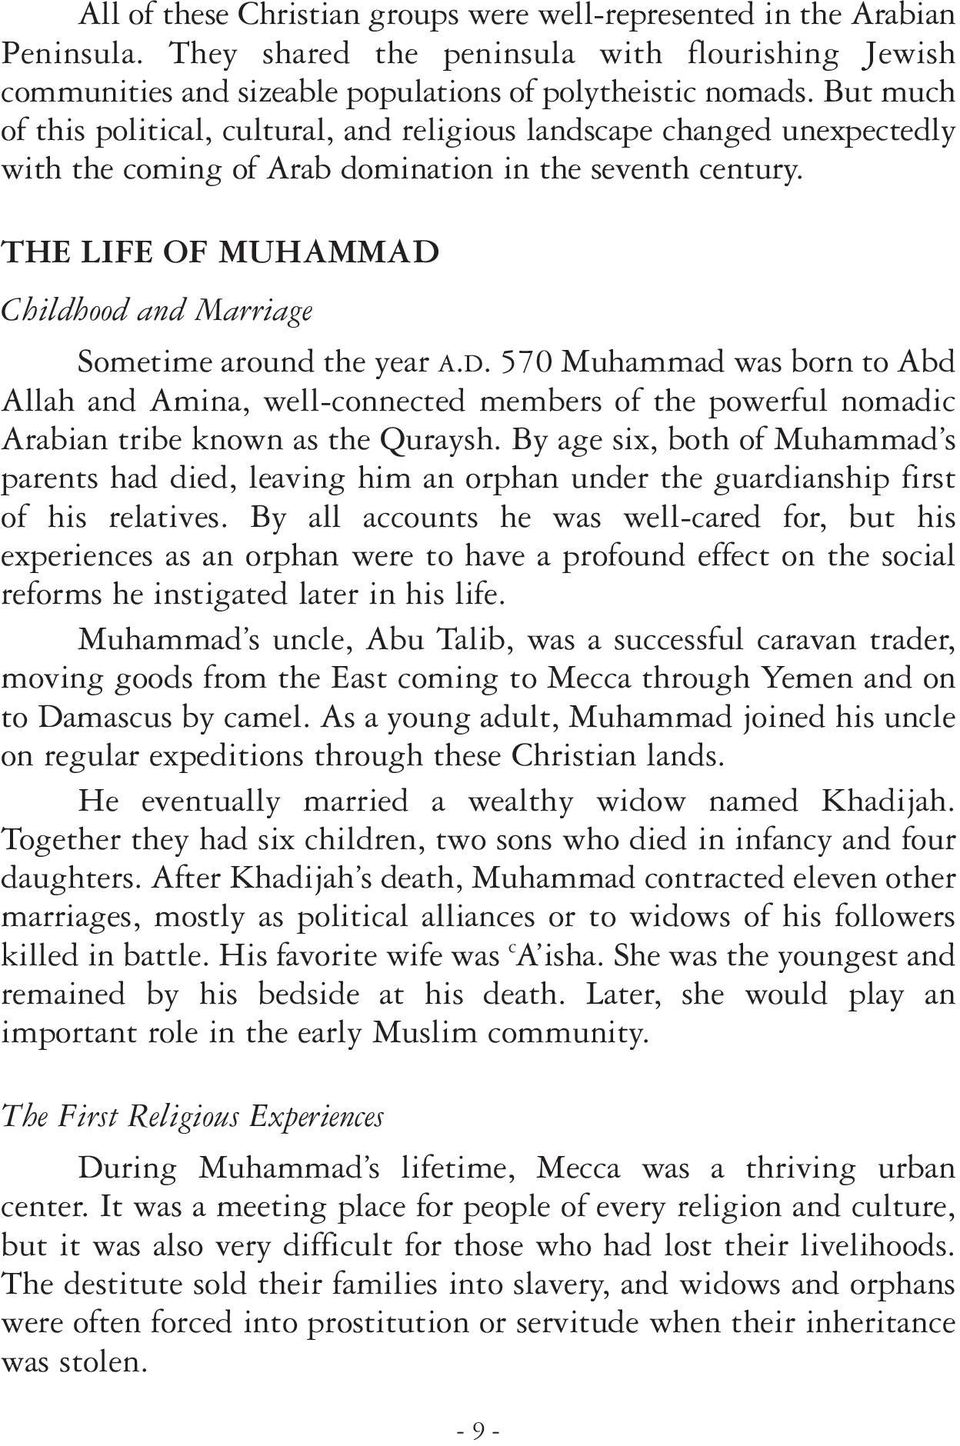 THE LIFE OF MUHAMMAD Childhood and Marriage Sometime around the year A.D. 570 Muhammad was born to Abd Allah and Amina, well-connected members of the powerful nomadic Arabian tribe known as the Quraysh.